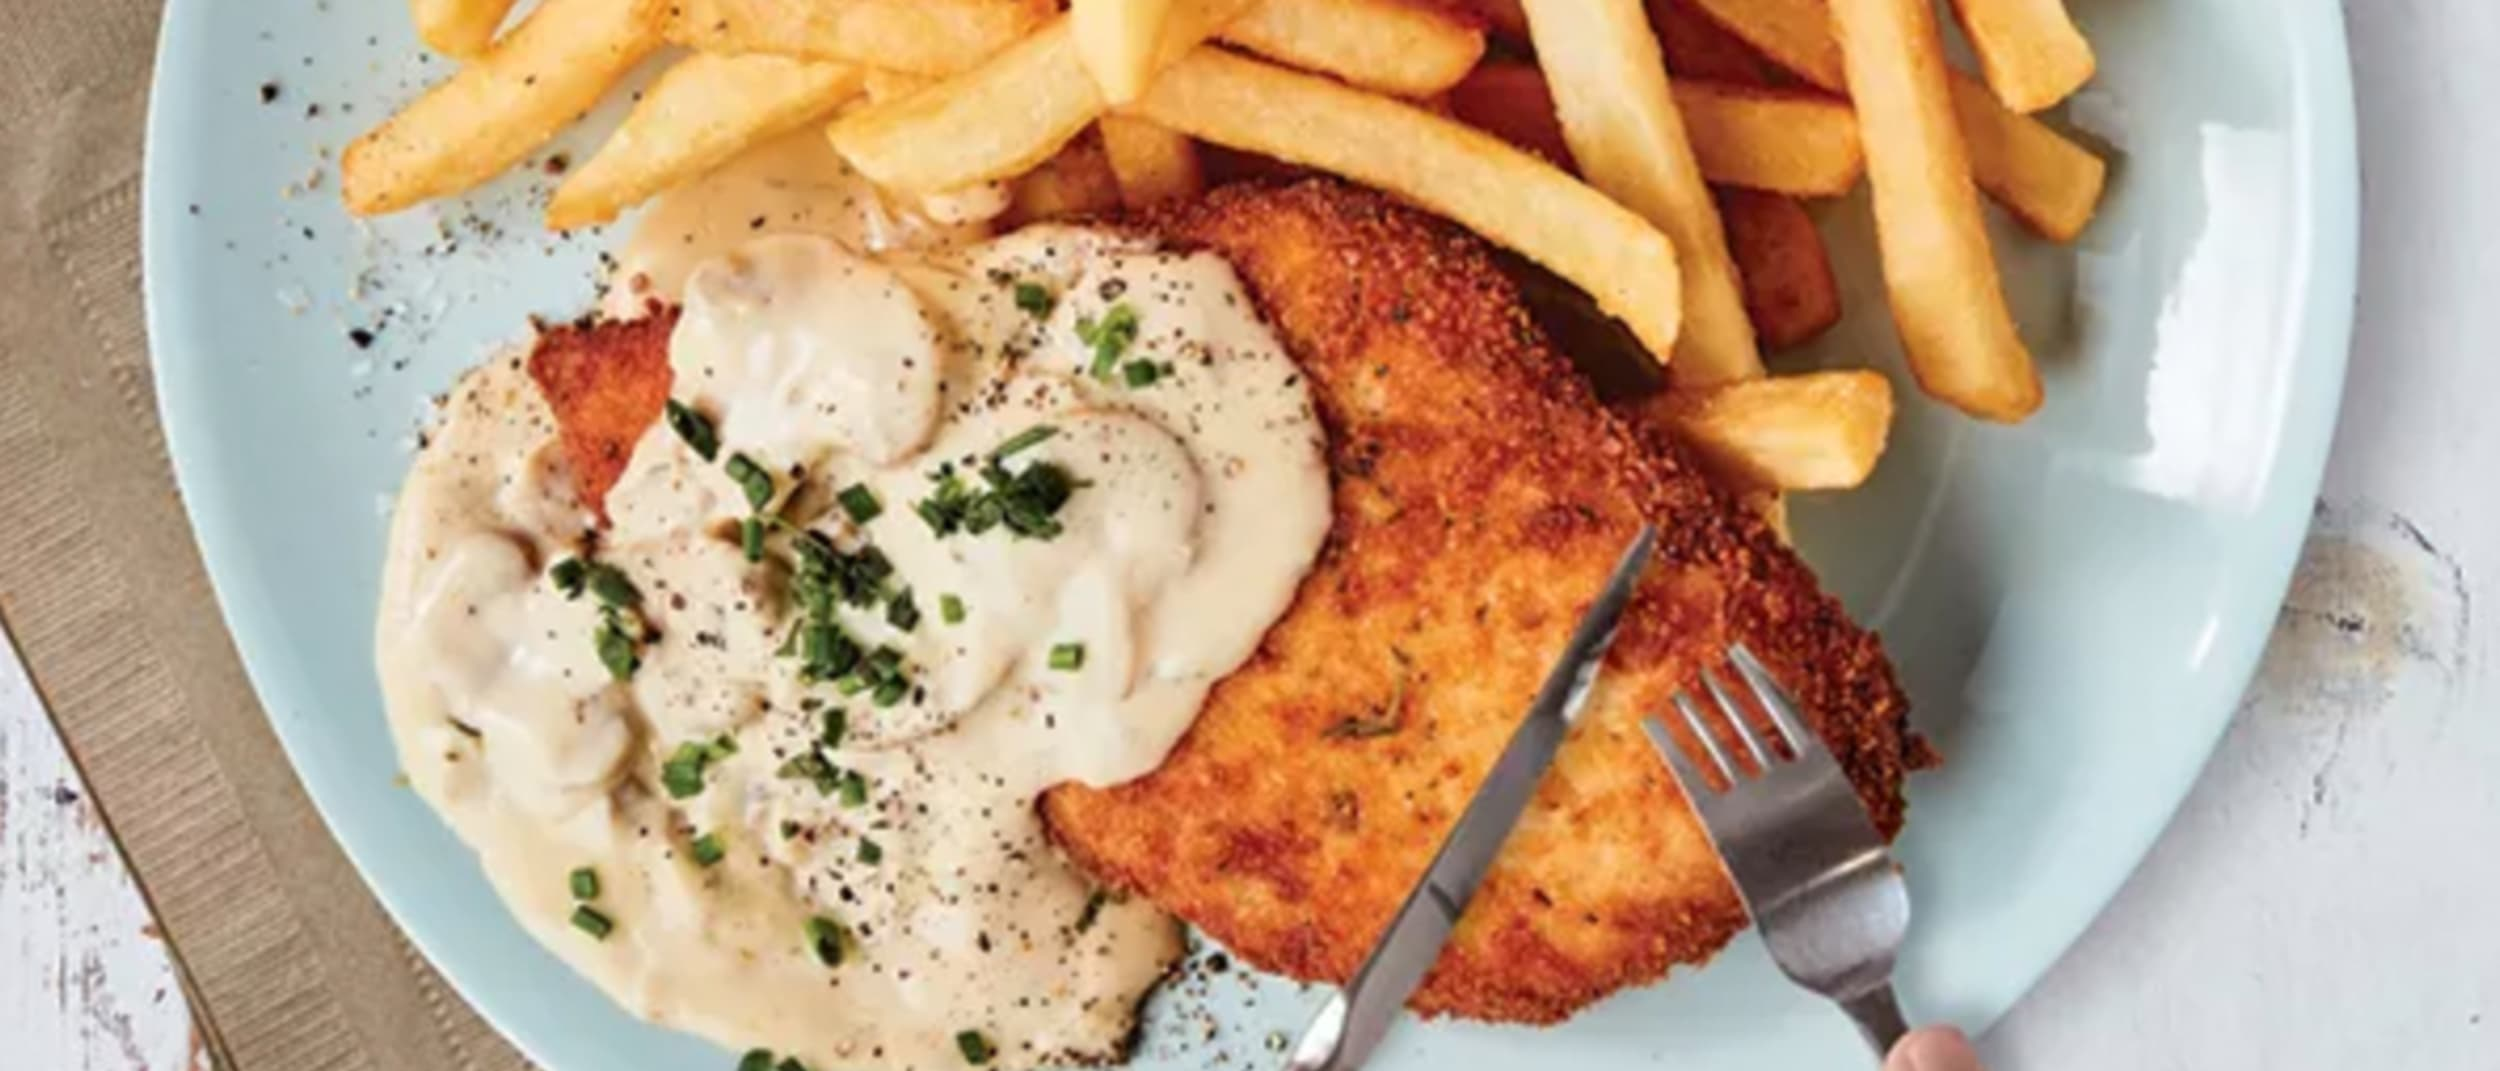 Bavarian: Loaded schnitzels in store now